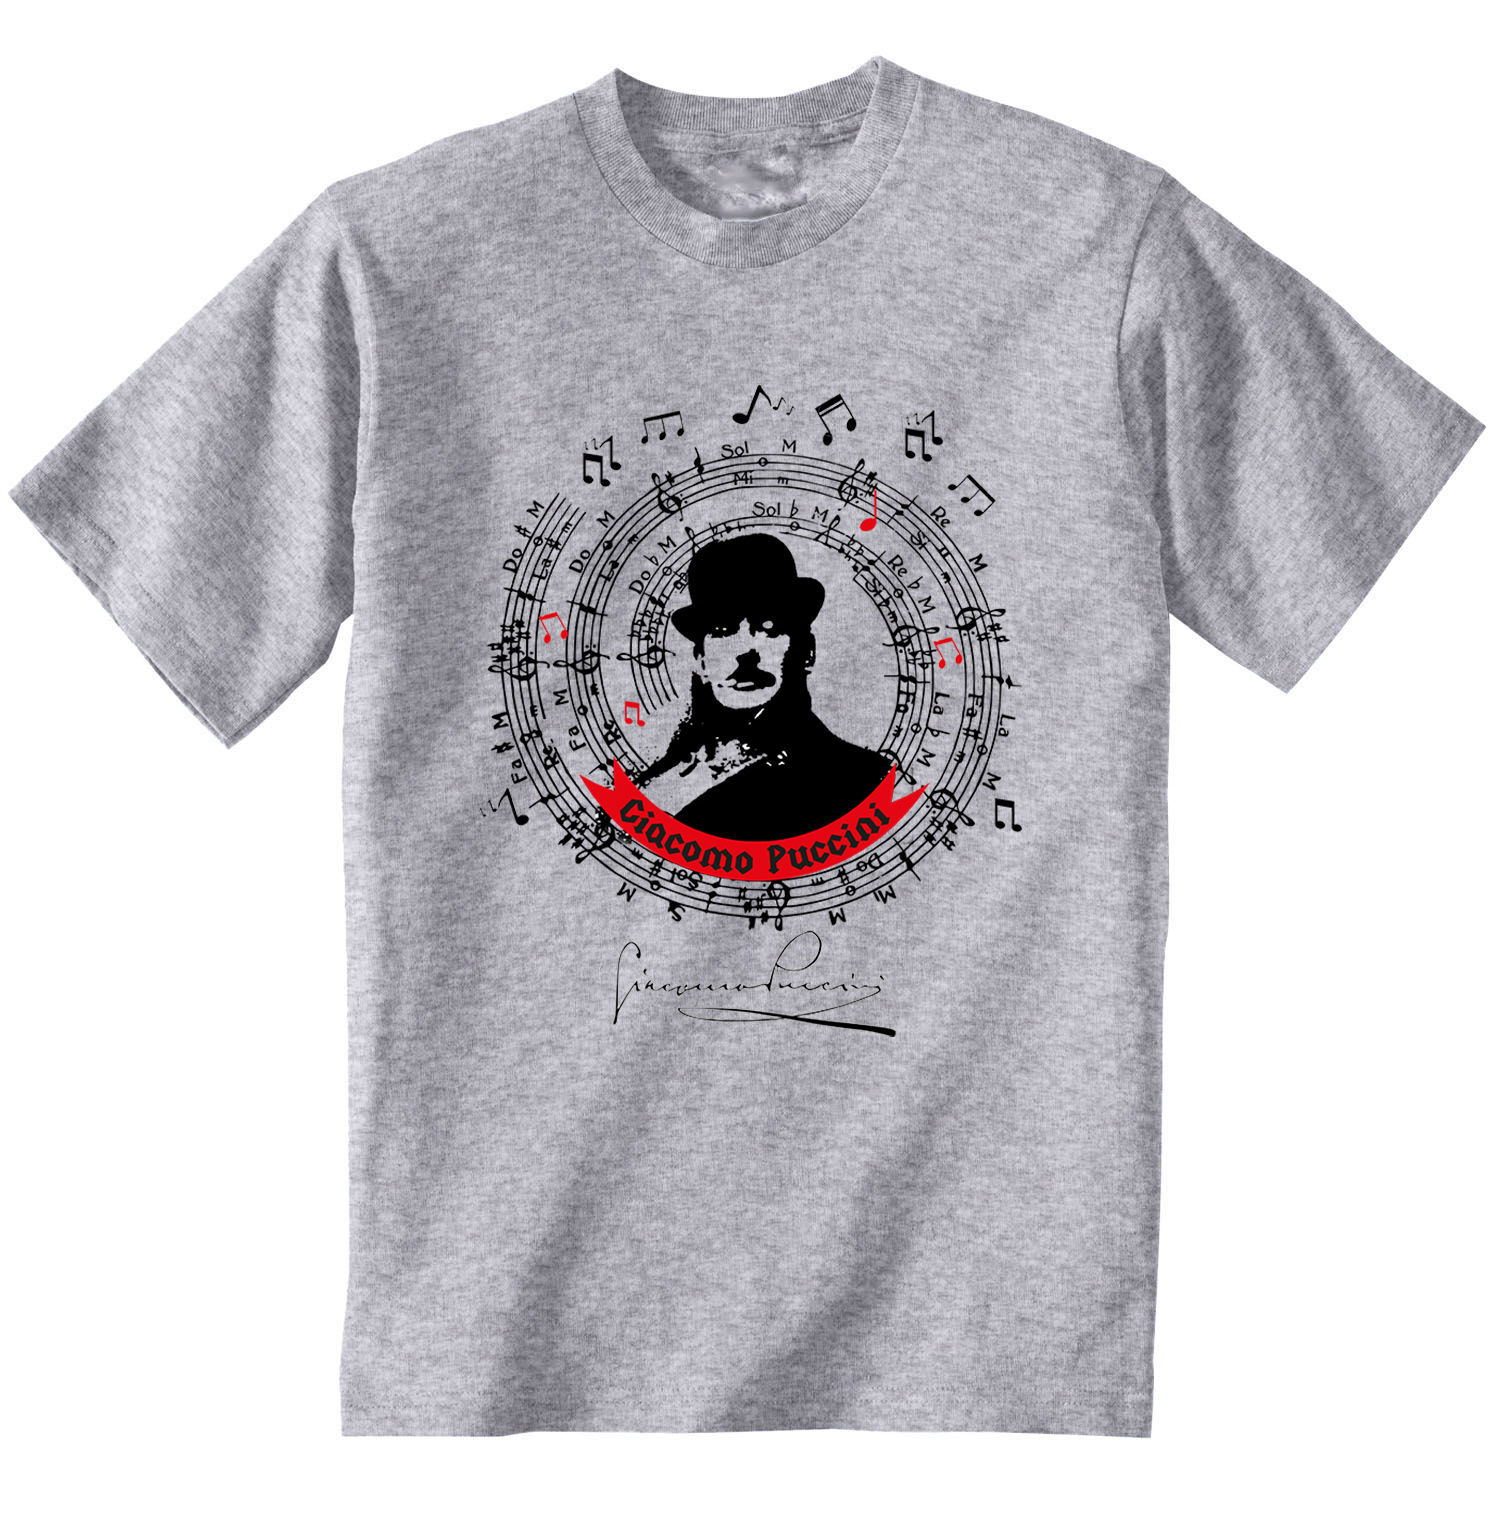 GIACOMO PUCCINI - NEW COTTON GREY GREY TSHIRT - $24.06